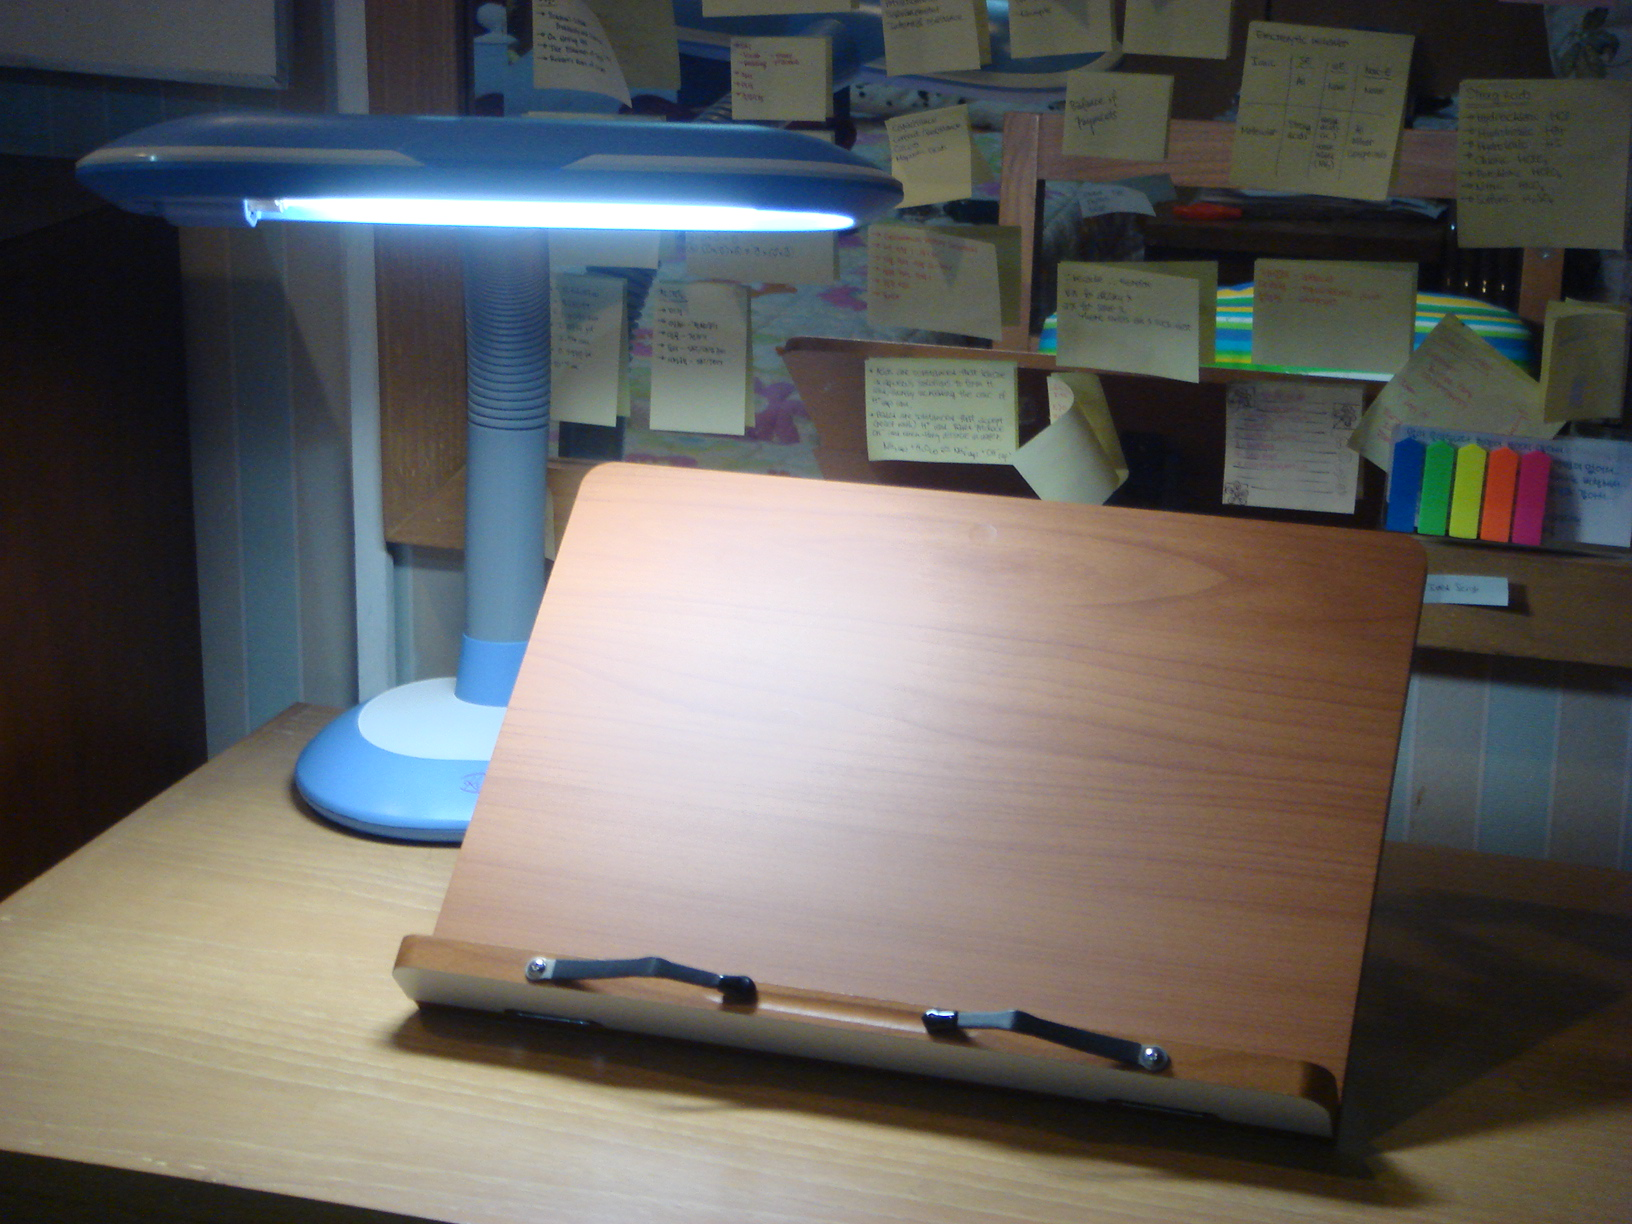 file bookstand with desk lamp wikimedia mons